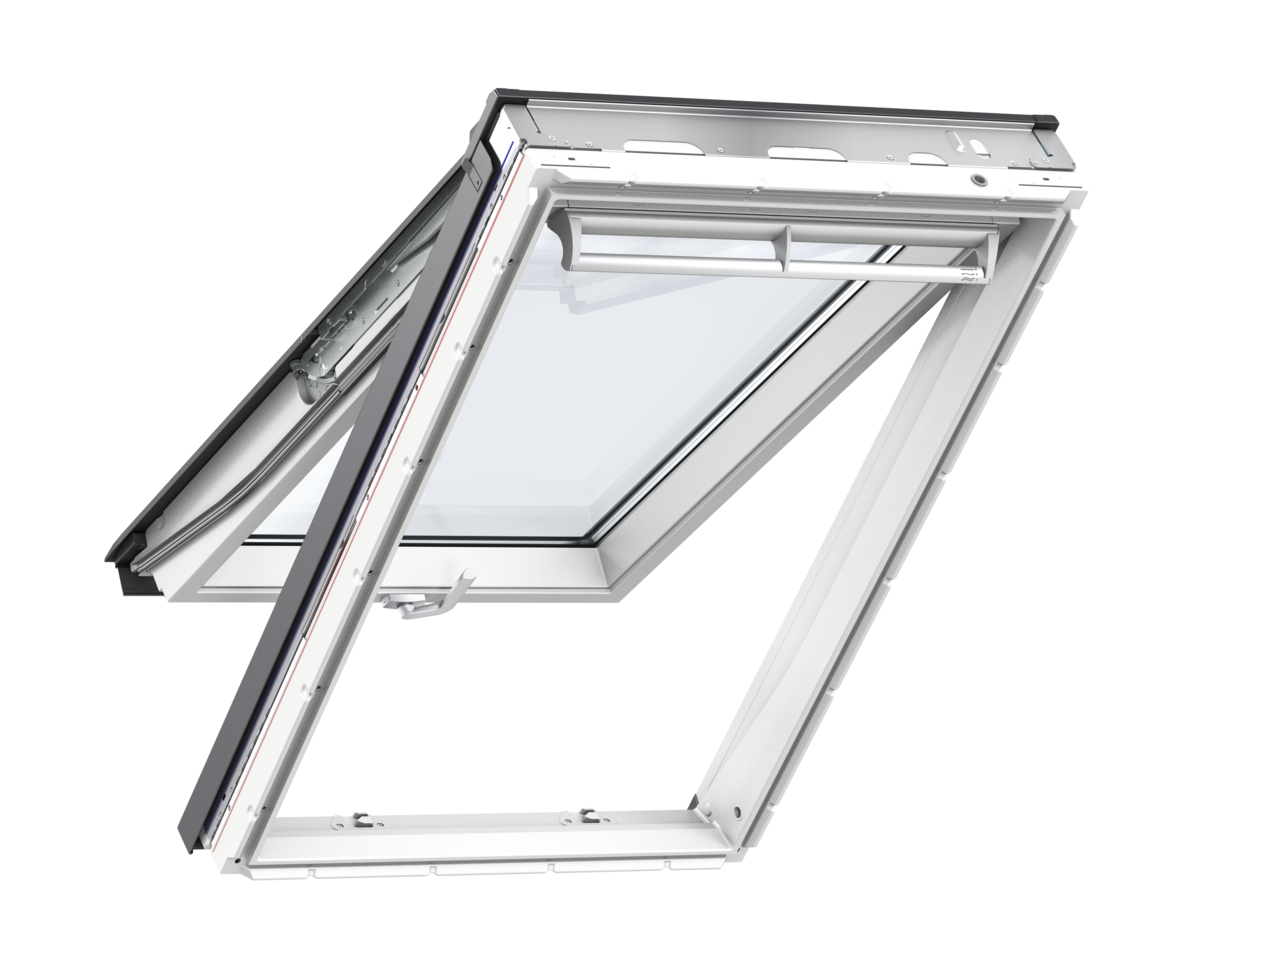 velux white polyurethane top hung roof window gpu. Black Bedroom Furniture Sets. Home Design Ideas